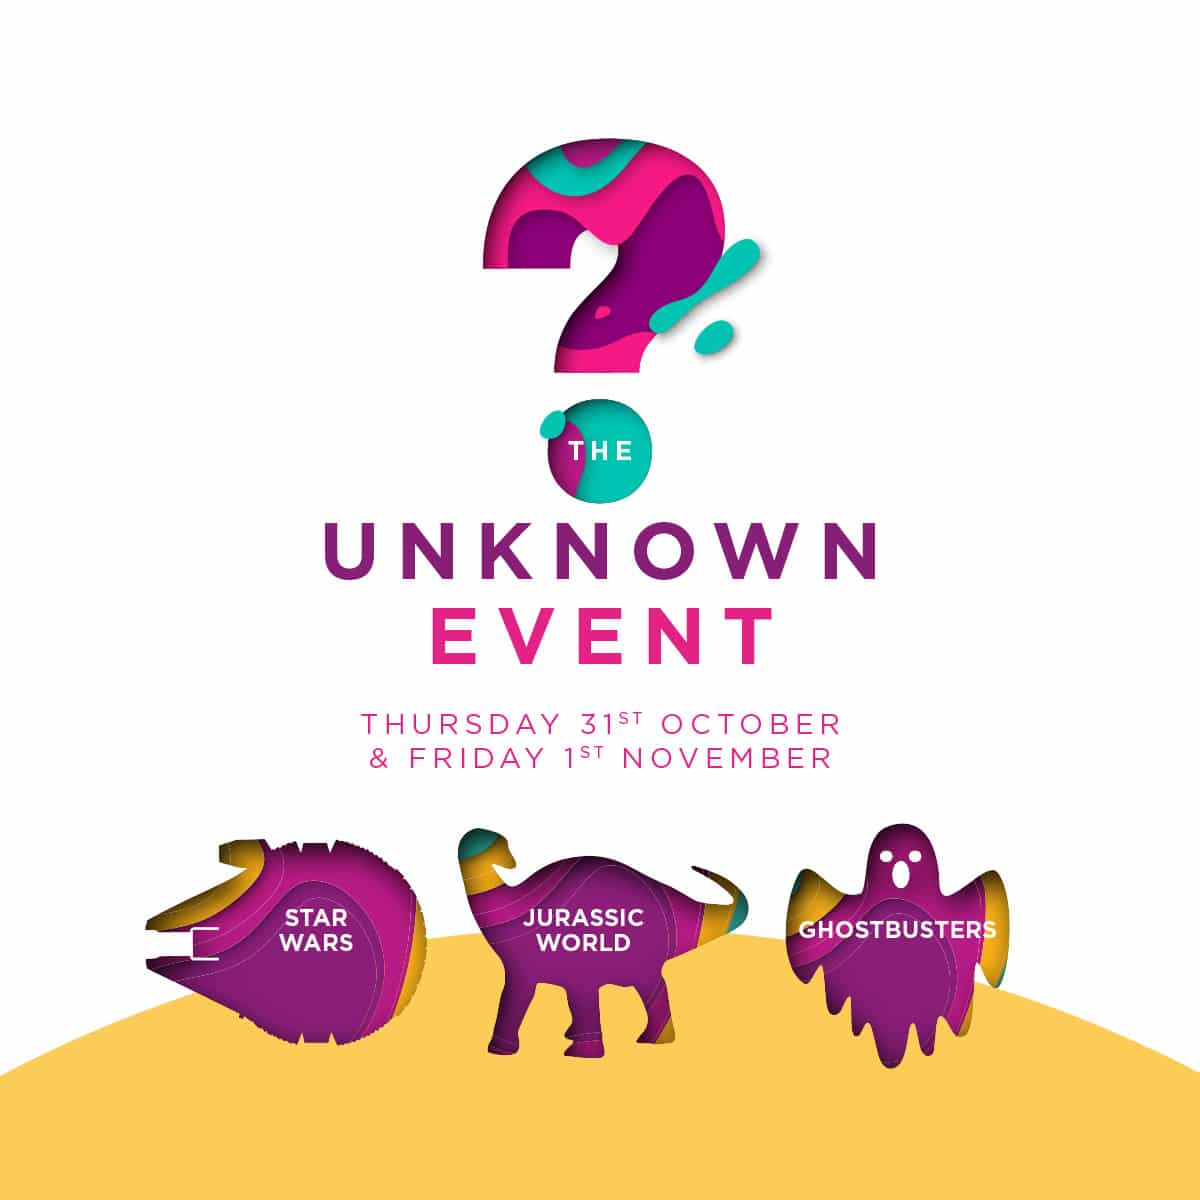 The Unknown Event